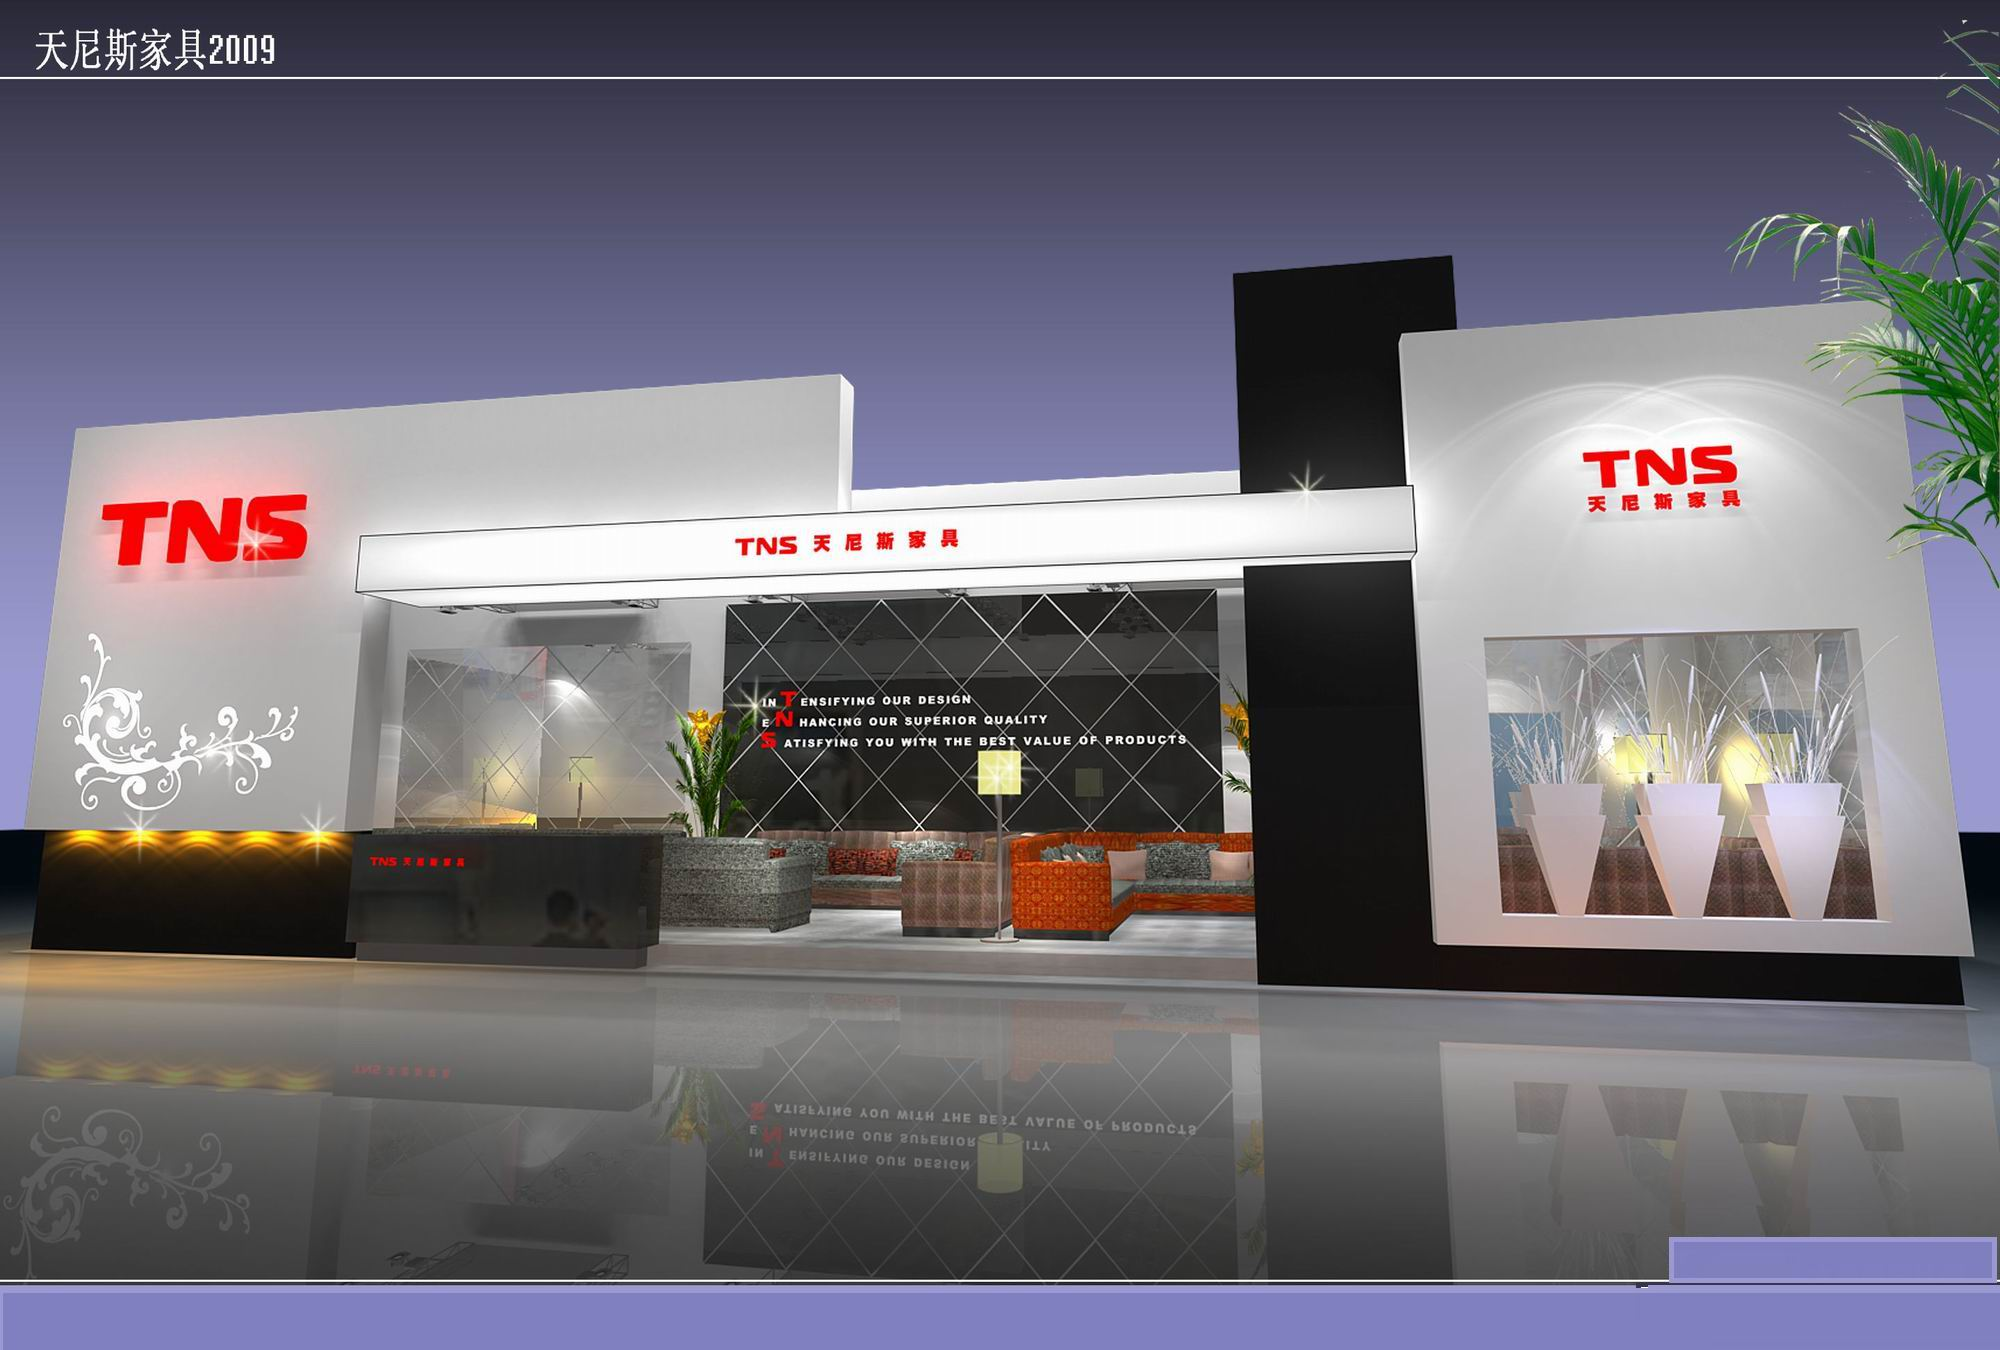 The 15th china international furniture expo tns booth no for Furniture expo